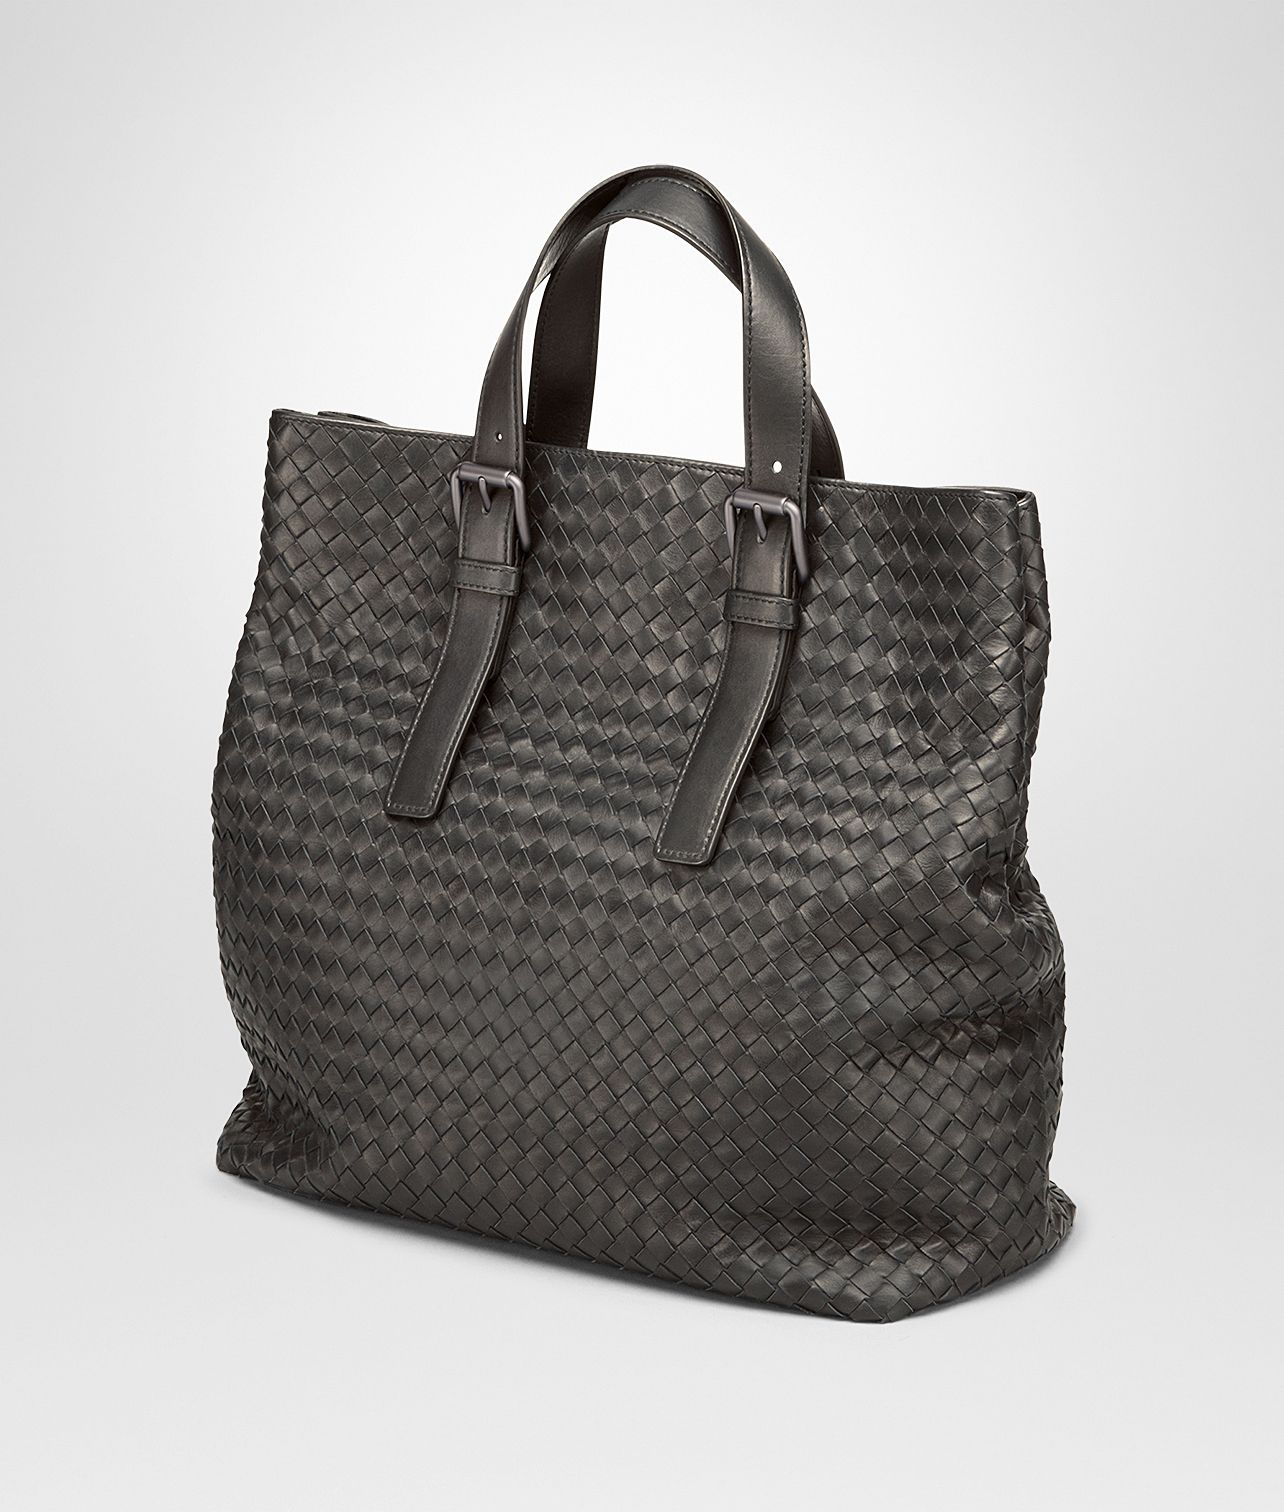 eaf819bc5b23 Bottega Veneta Men s TOTE BAG IN MORO INTRECCIATO CALF